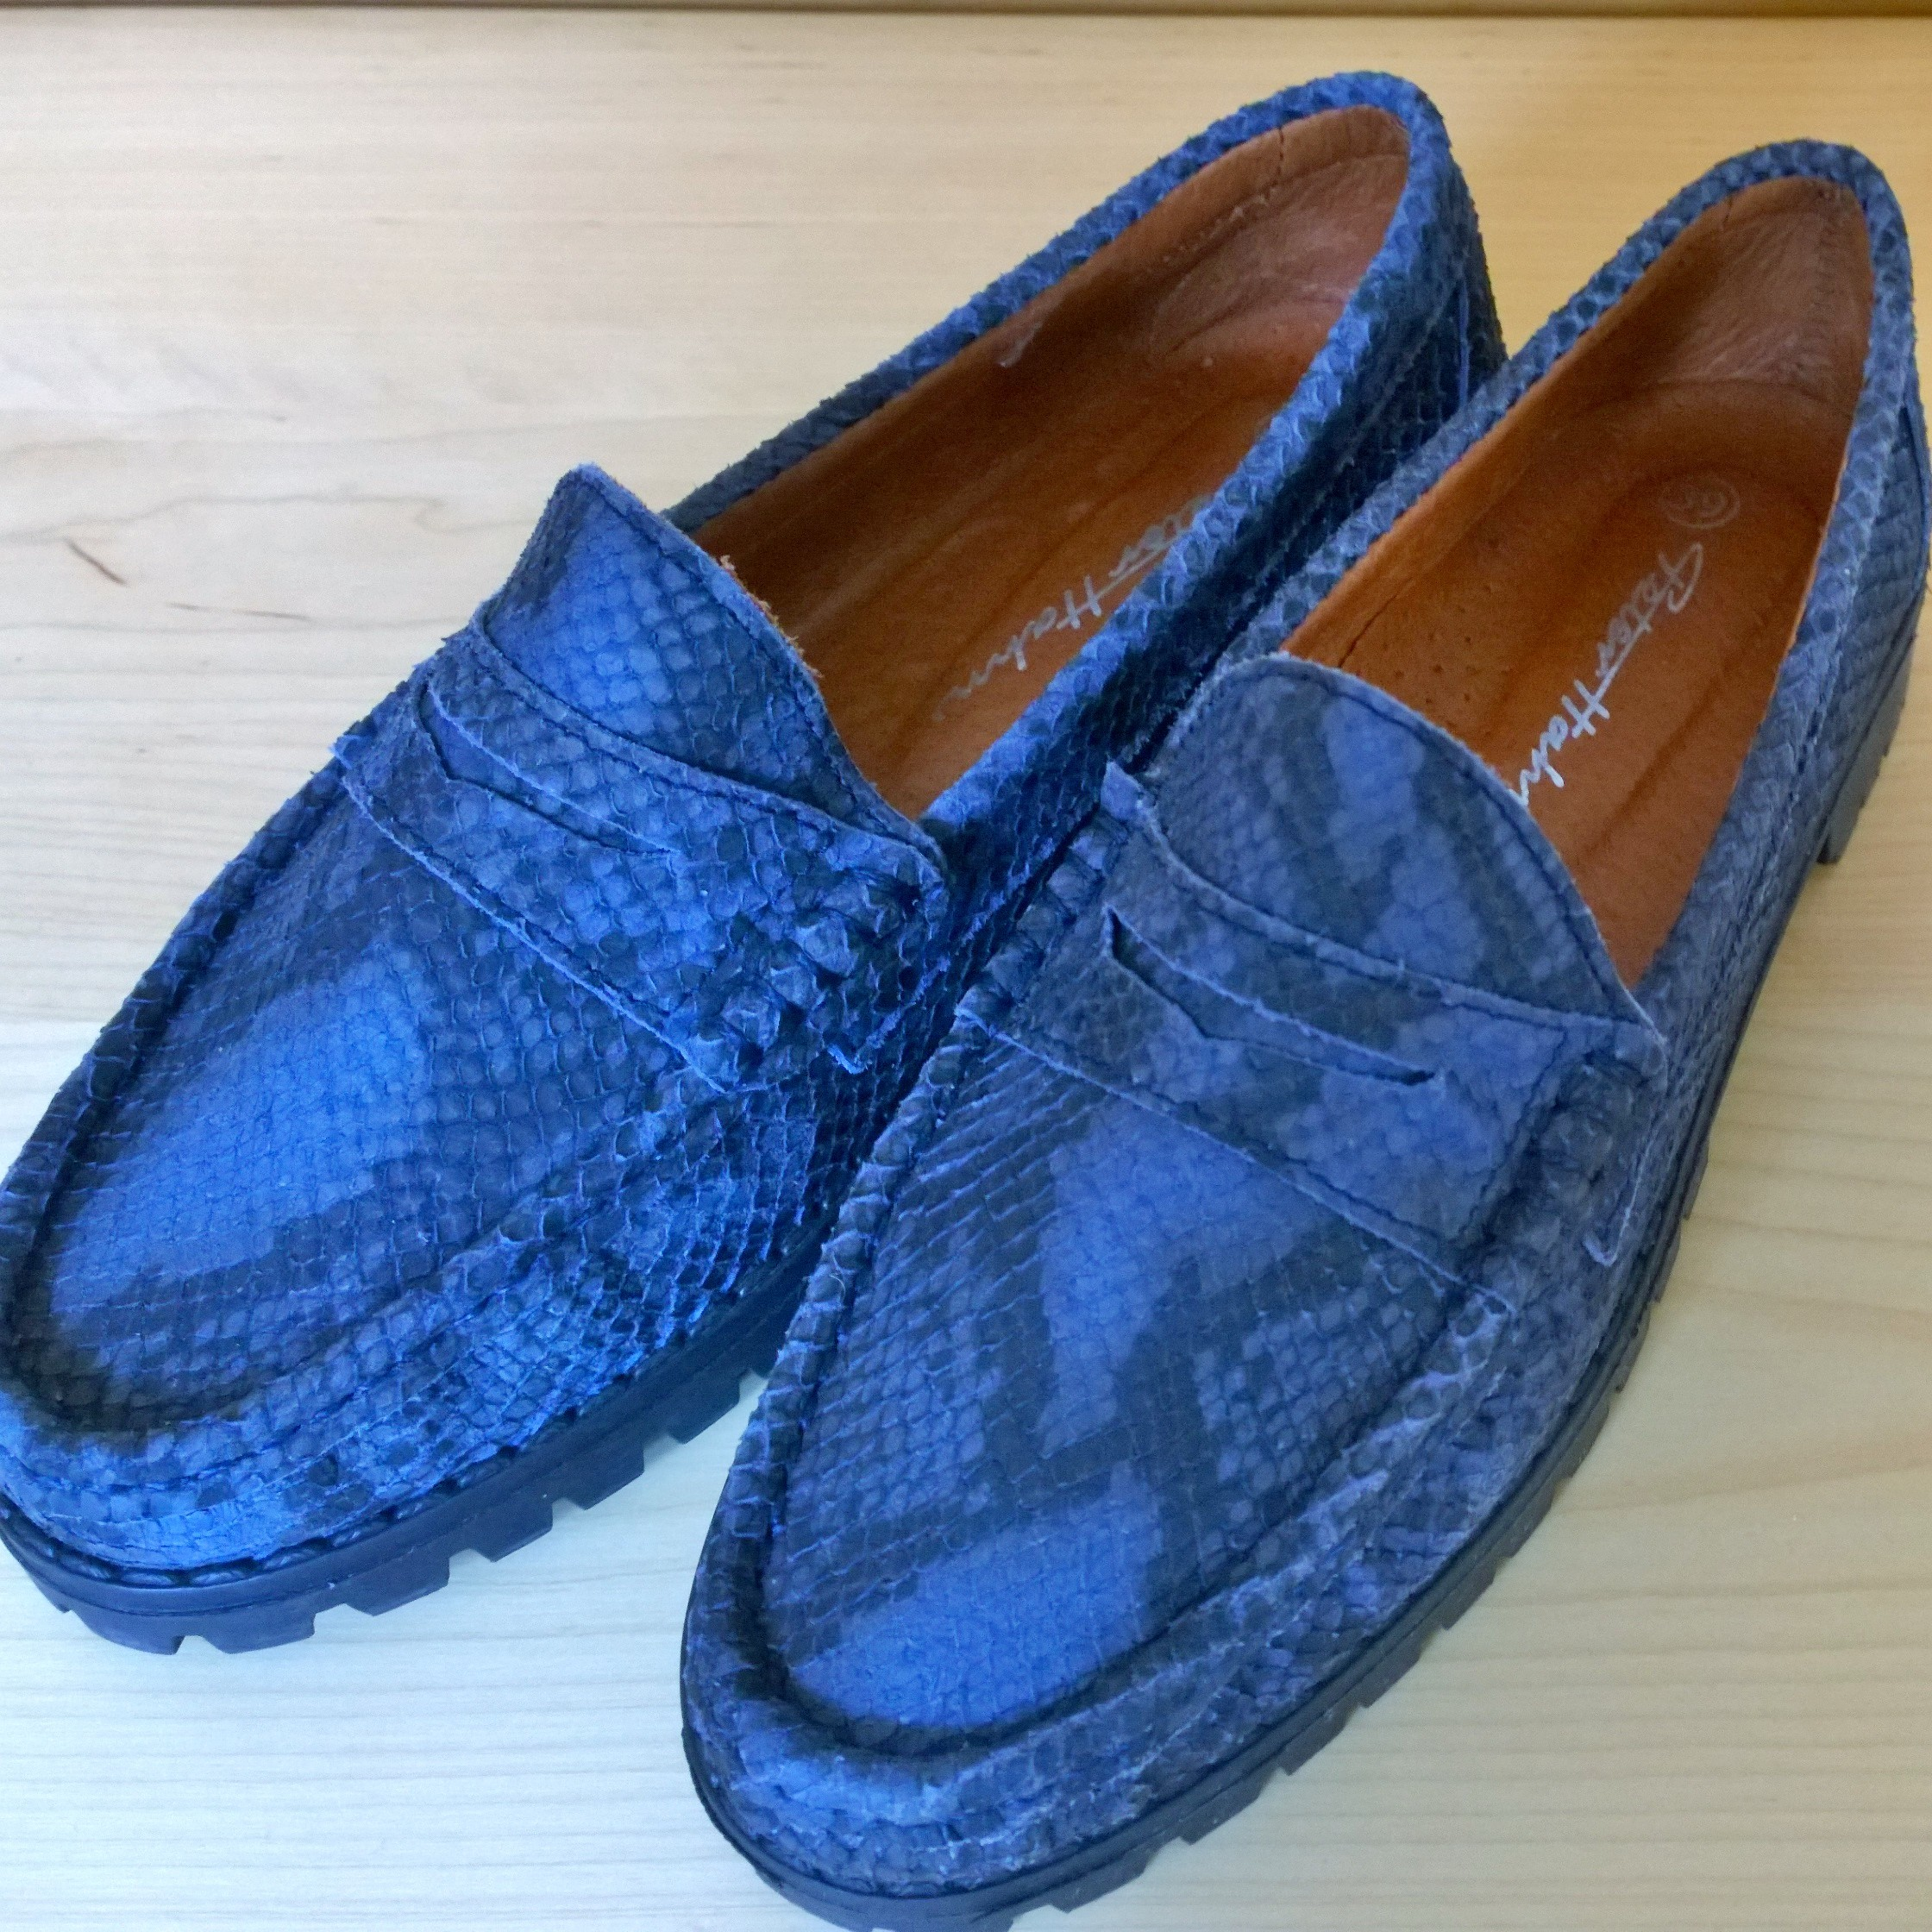 307a779db7b For sale: PETER HAHN SHOES (size 6.5) BLUE LEATHER LOAFERS SLIP ON NON-SLIP  GRIP SOLES DESIGNER ITALIAN